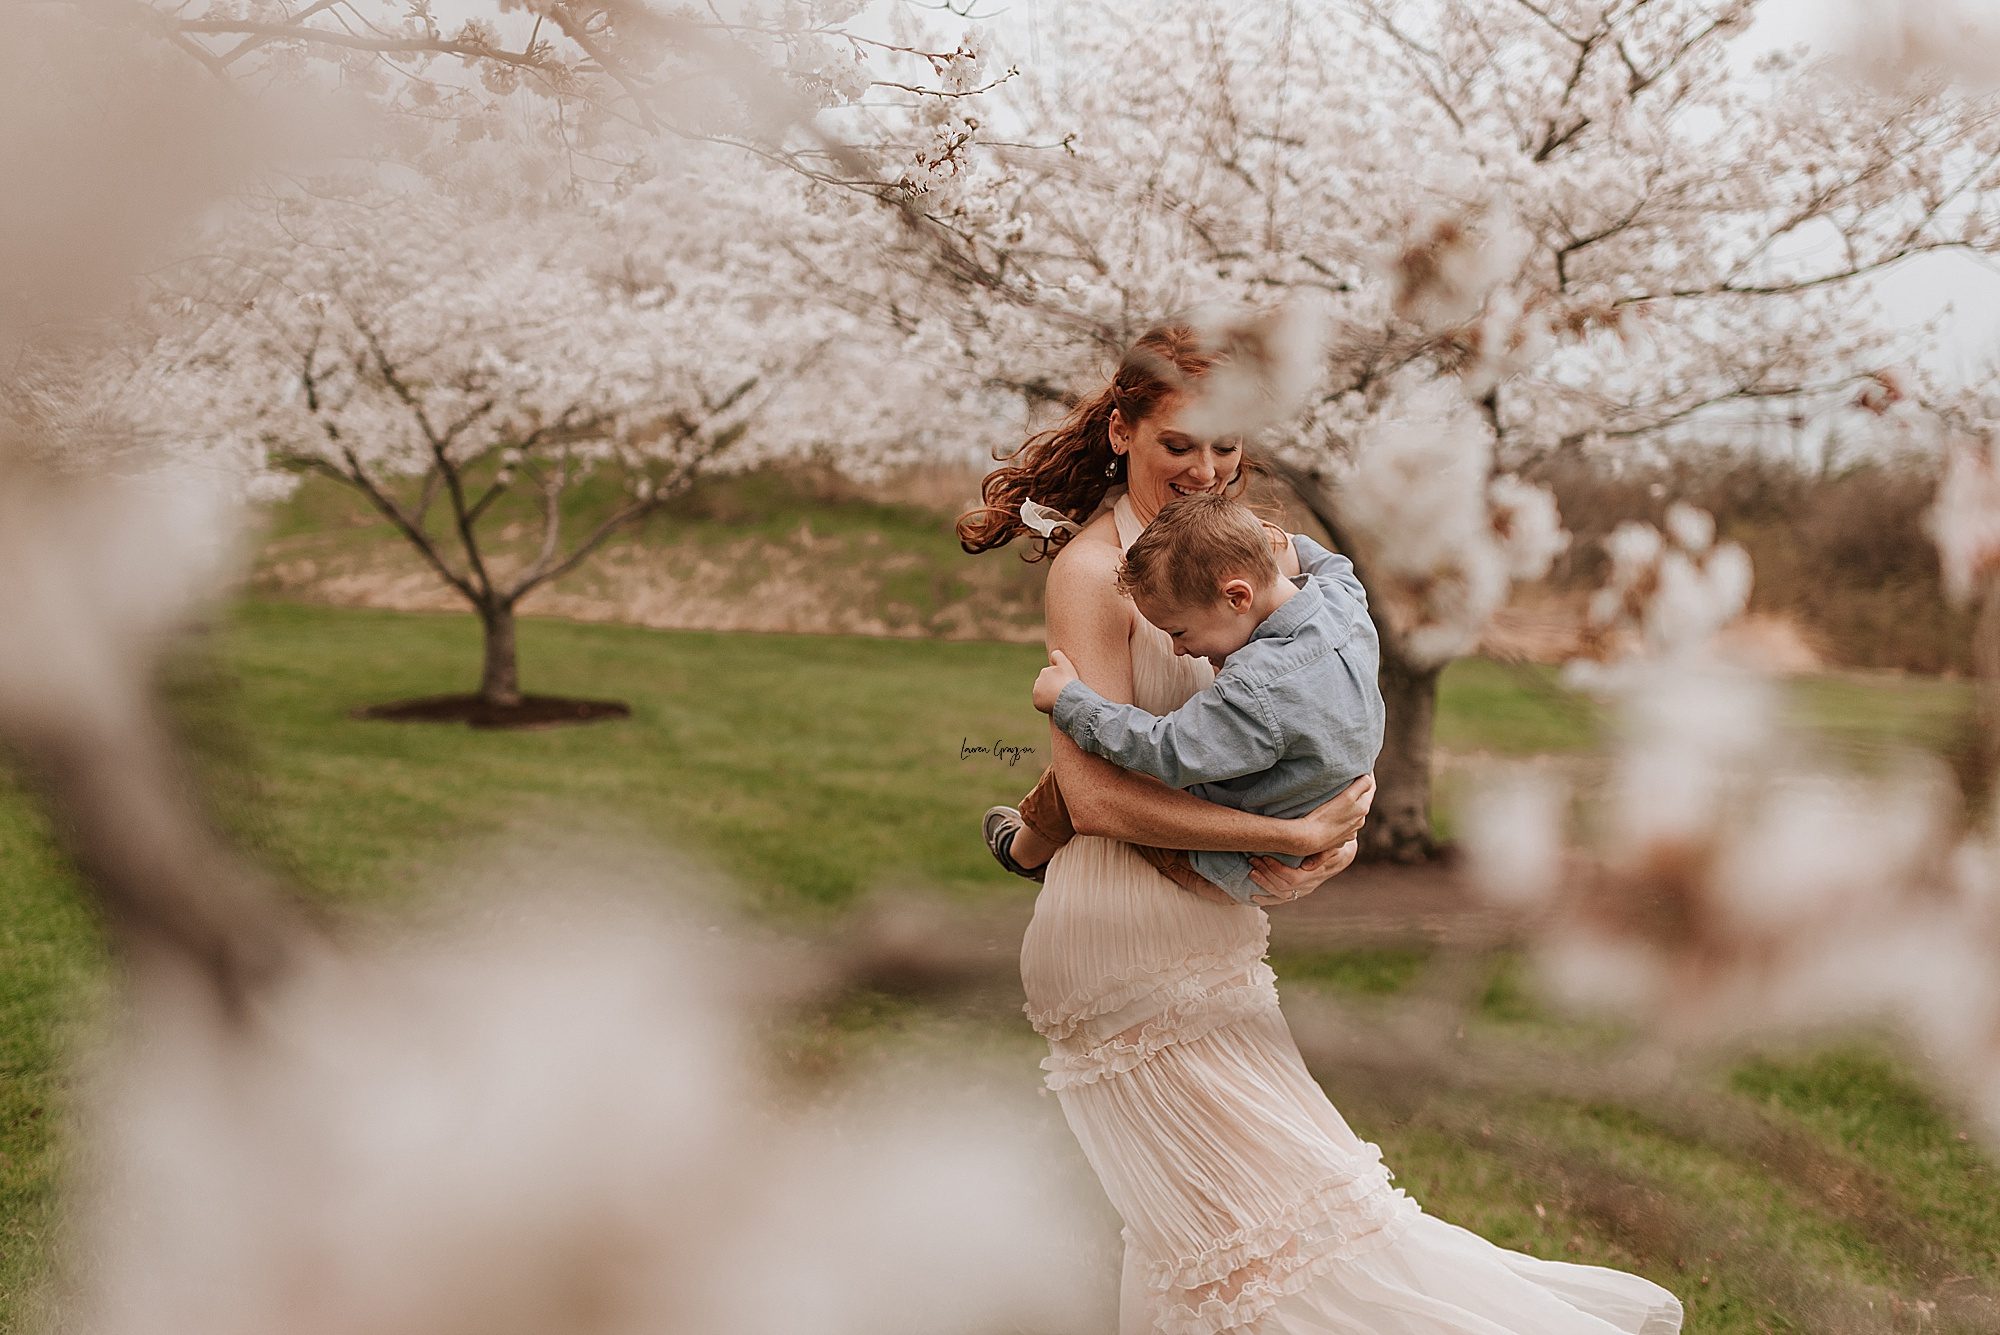 lauren-grayson-photography-cleveland-ohio-motherhood-family-child-photo-session-cherry-blossoms_0004.jpg